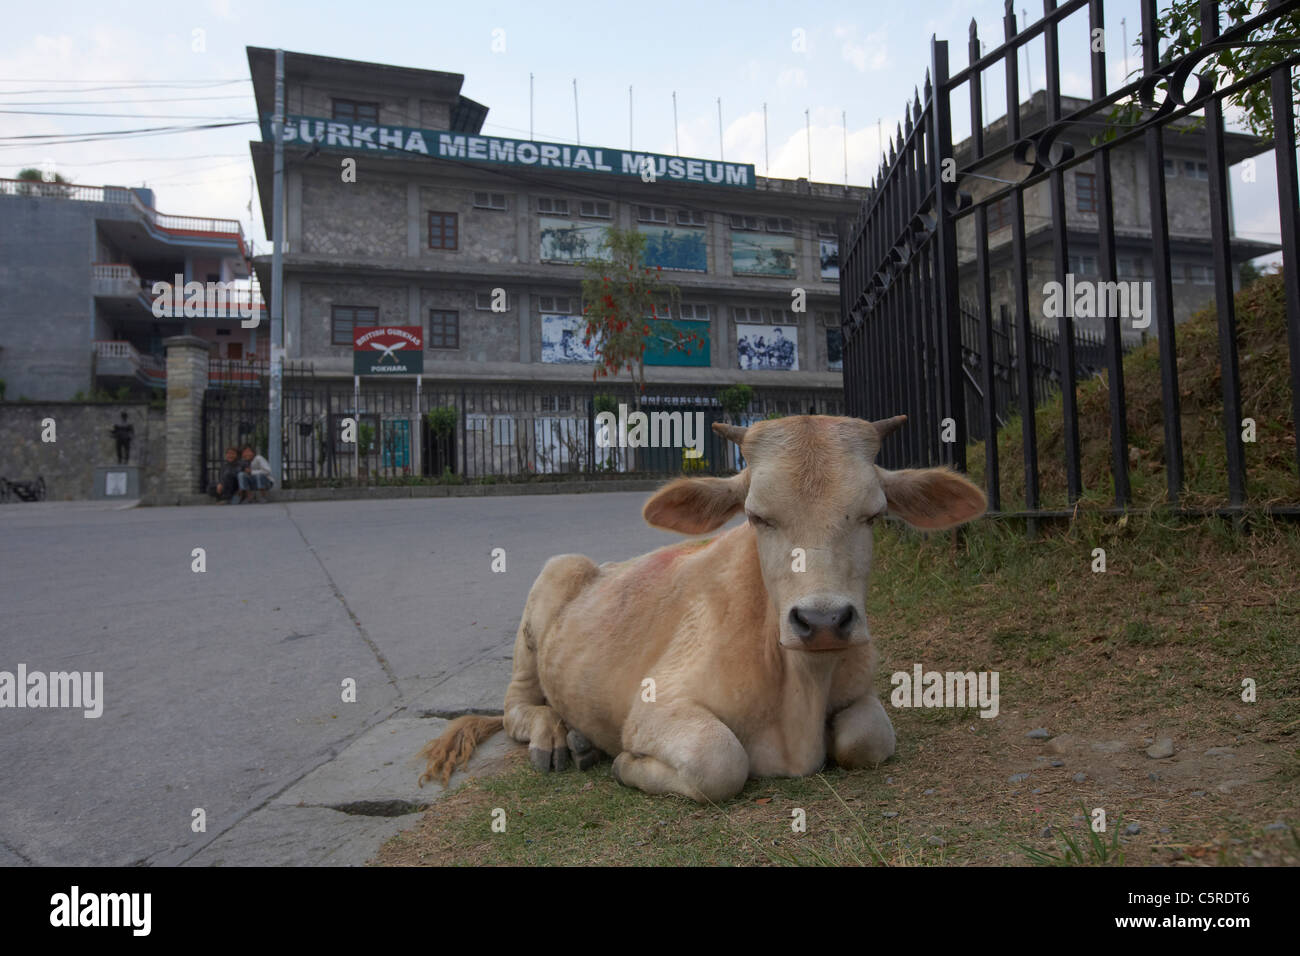 Cow outside the Gurkha Memorial Museum, Pokhara, Nepal - Stock Image